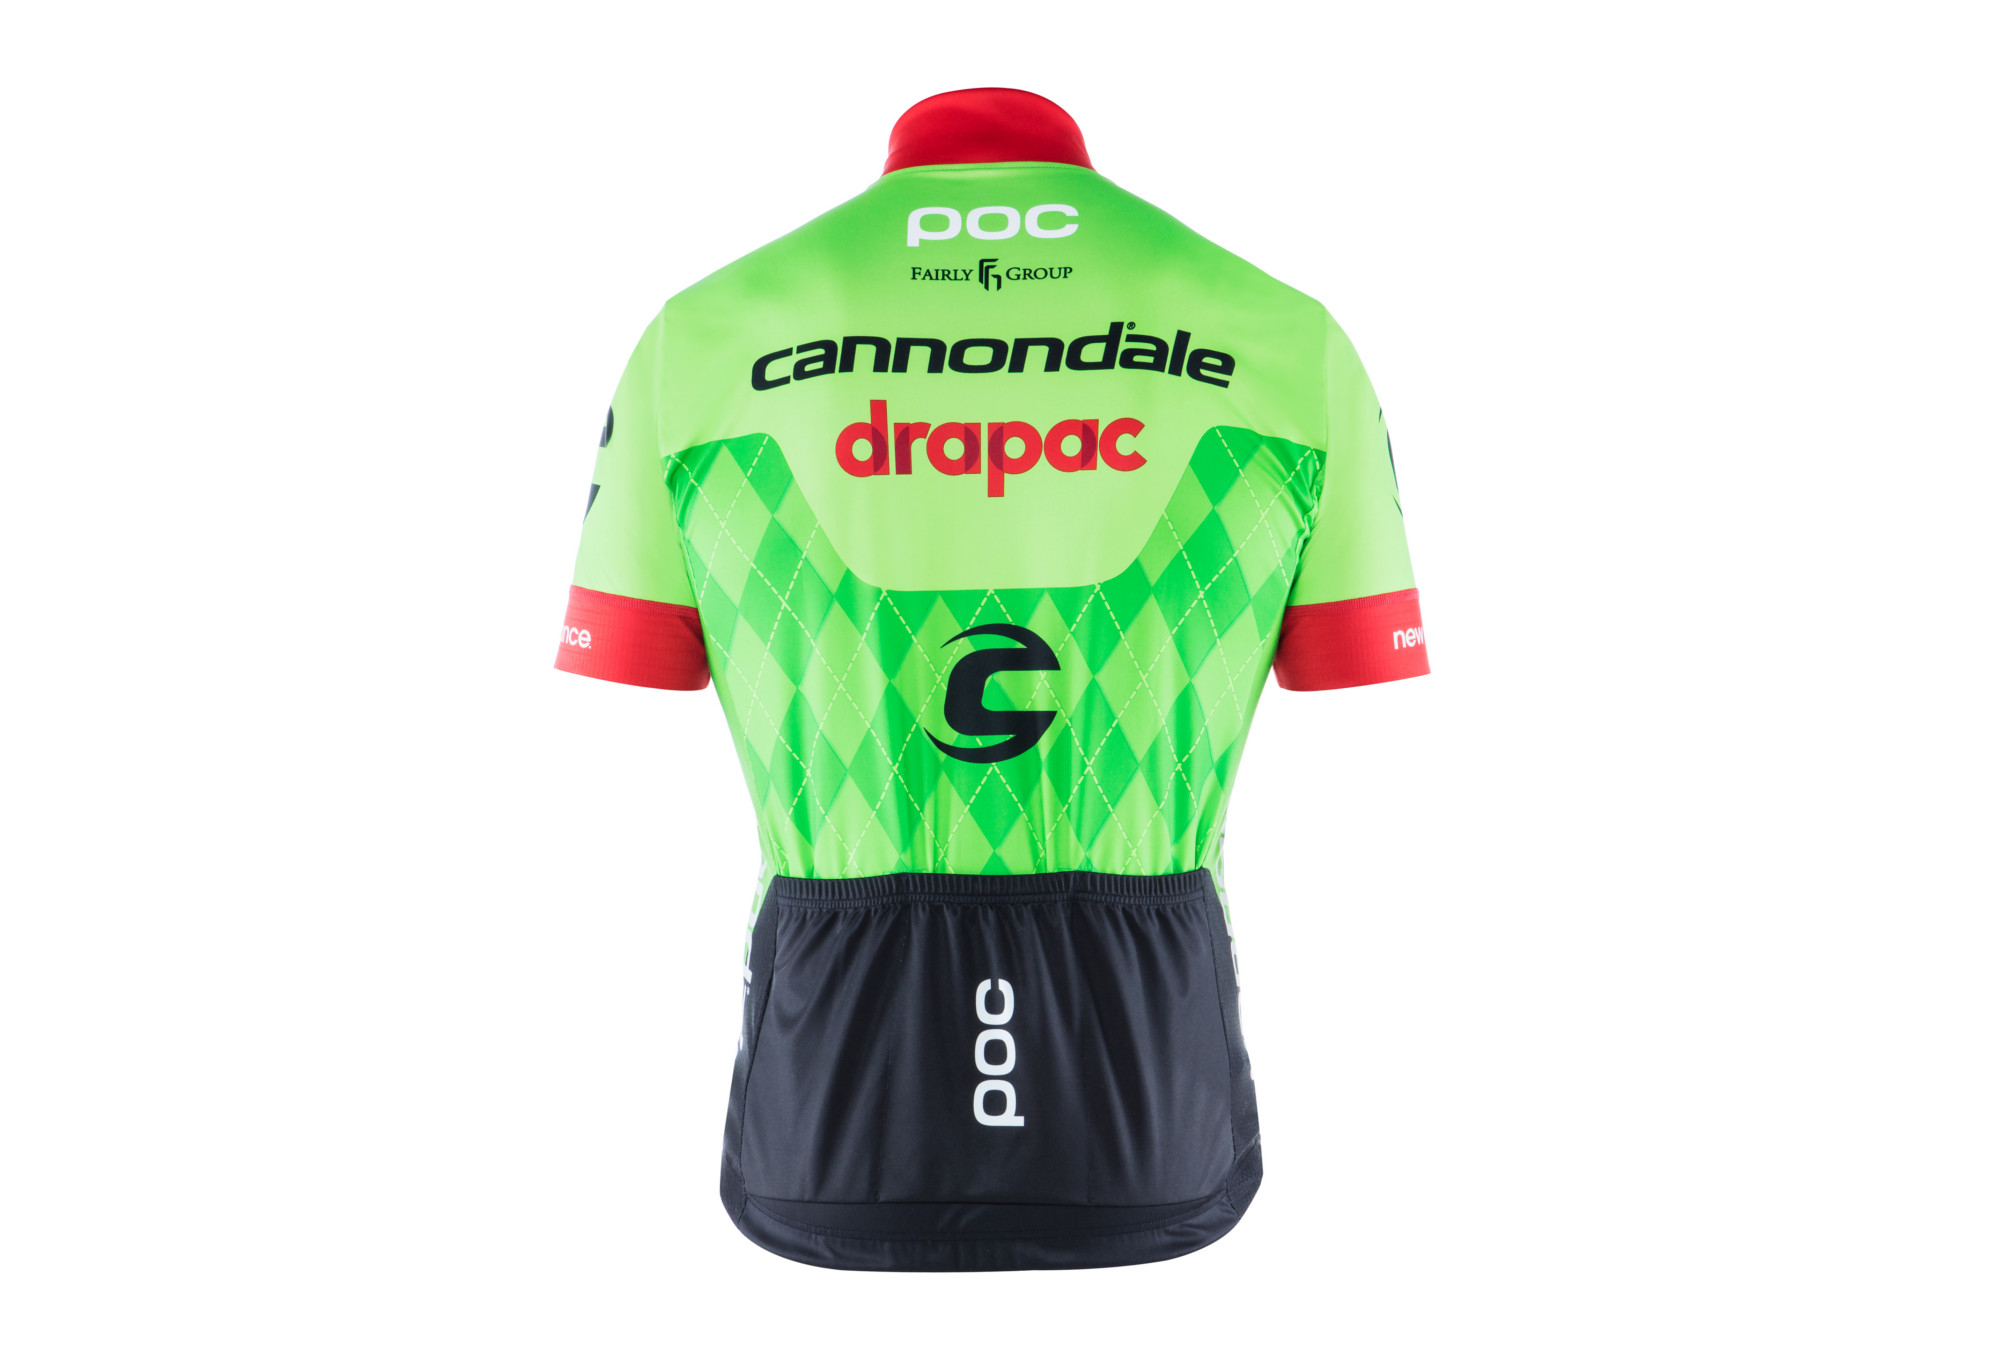 b1f01d03e1 Short Sleeves Jersey POC 2017 Cannondale Drapac Pro Team Green ...